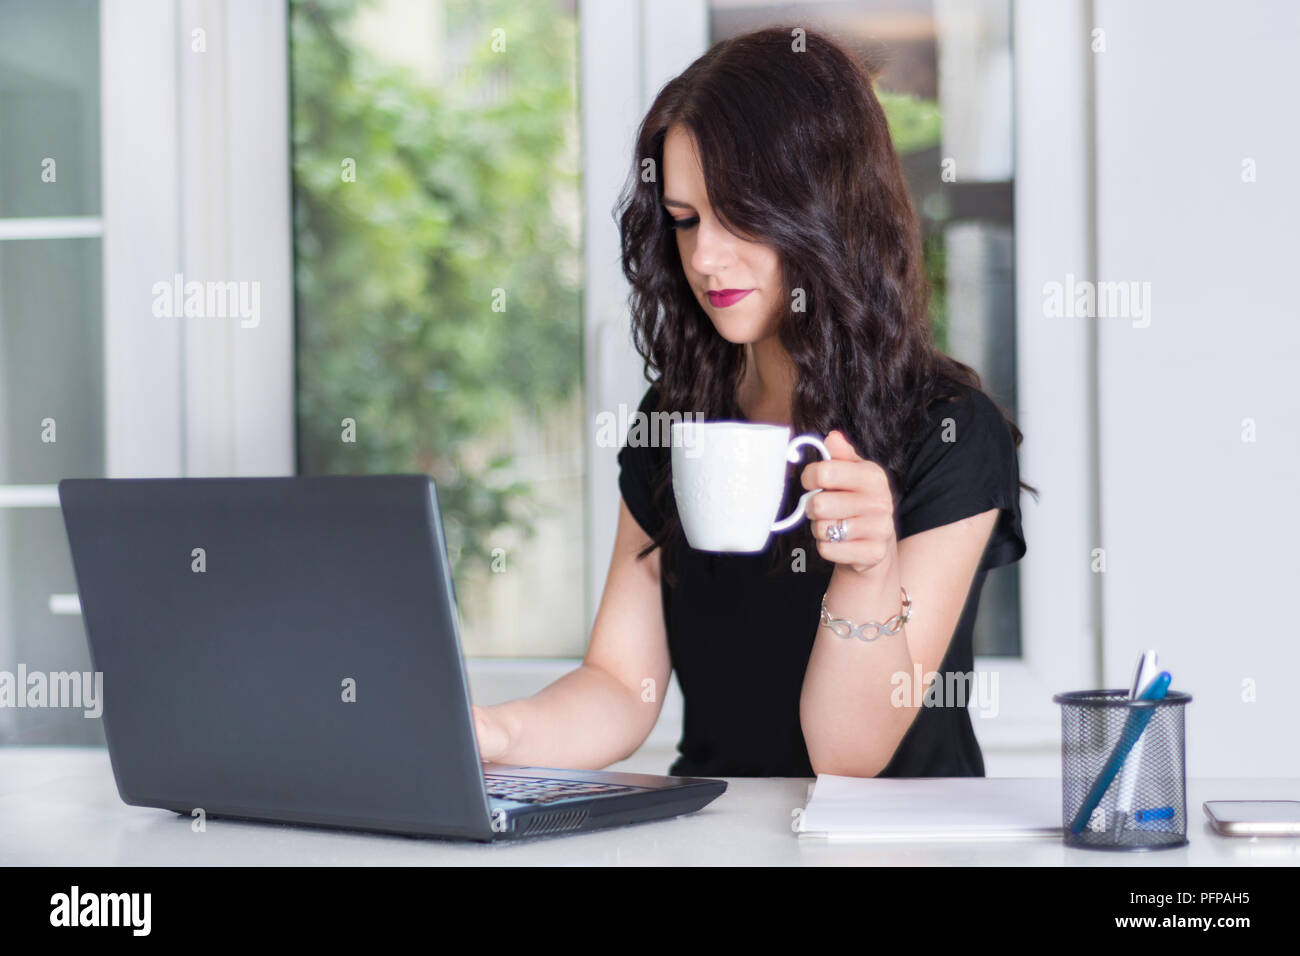 Beautiful young girl working on laptop at office desk and drinking cup of coffee. Modern business and job concept. Close up, selective focus - Stock Image